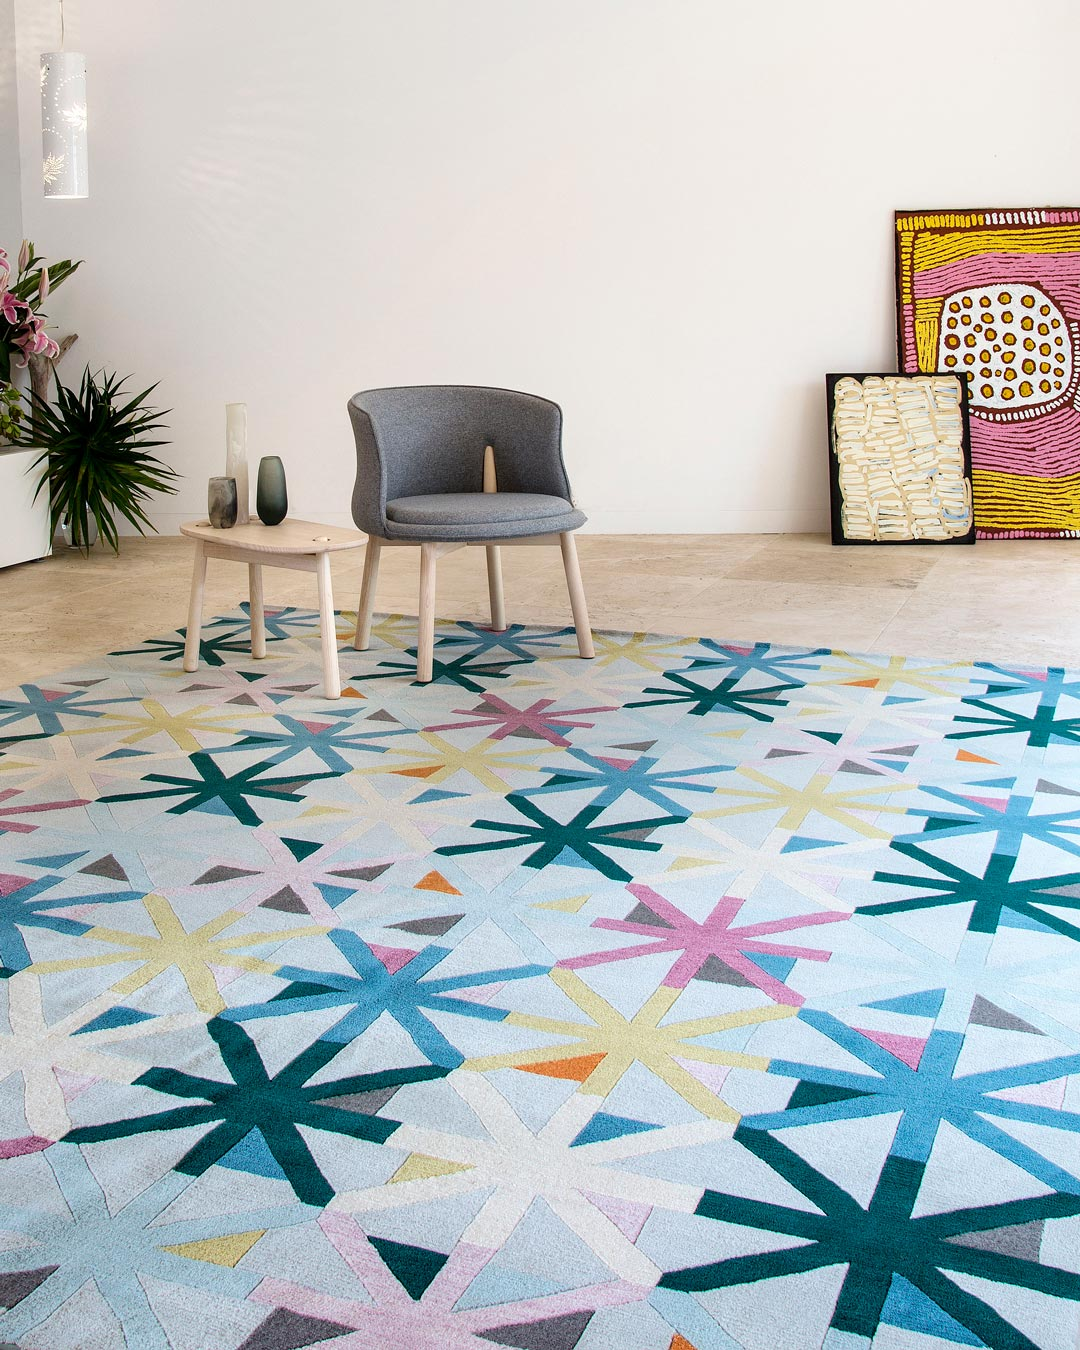 location shot of criss cross rug by bernabeifreeman in multicoloured star pattern